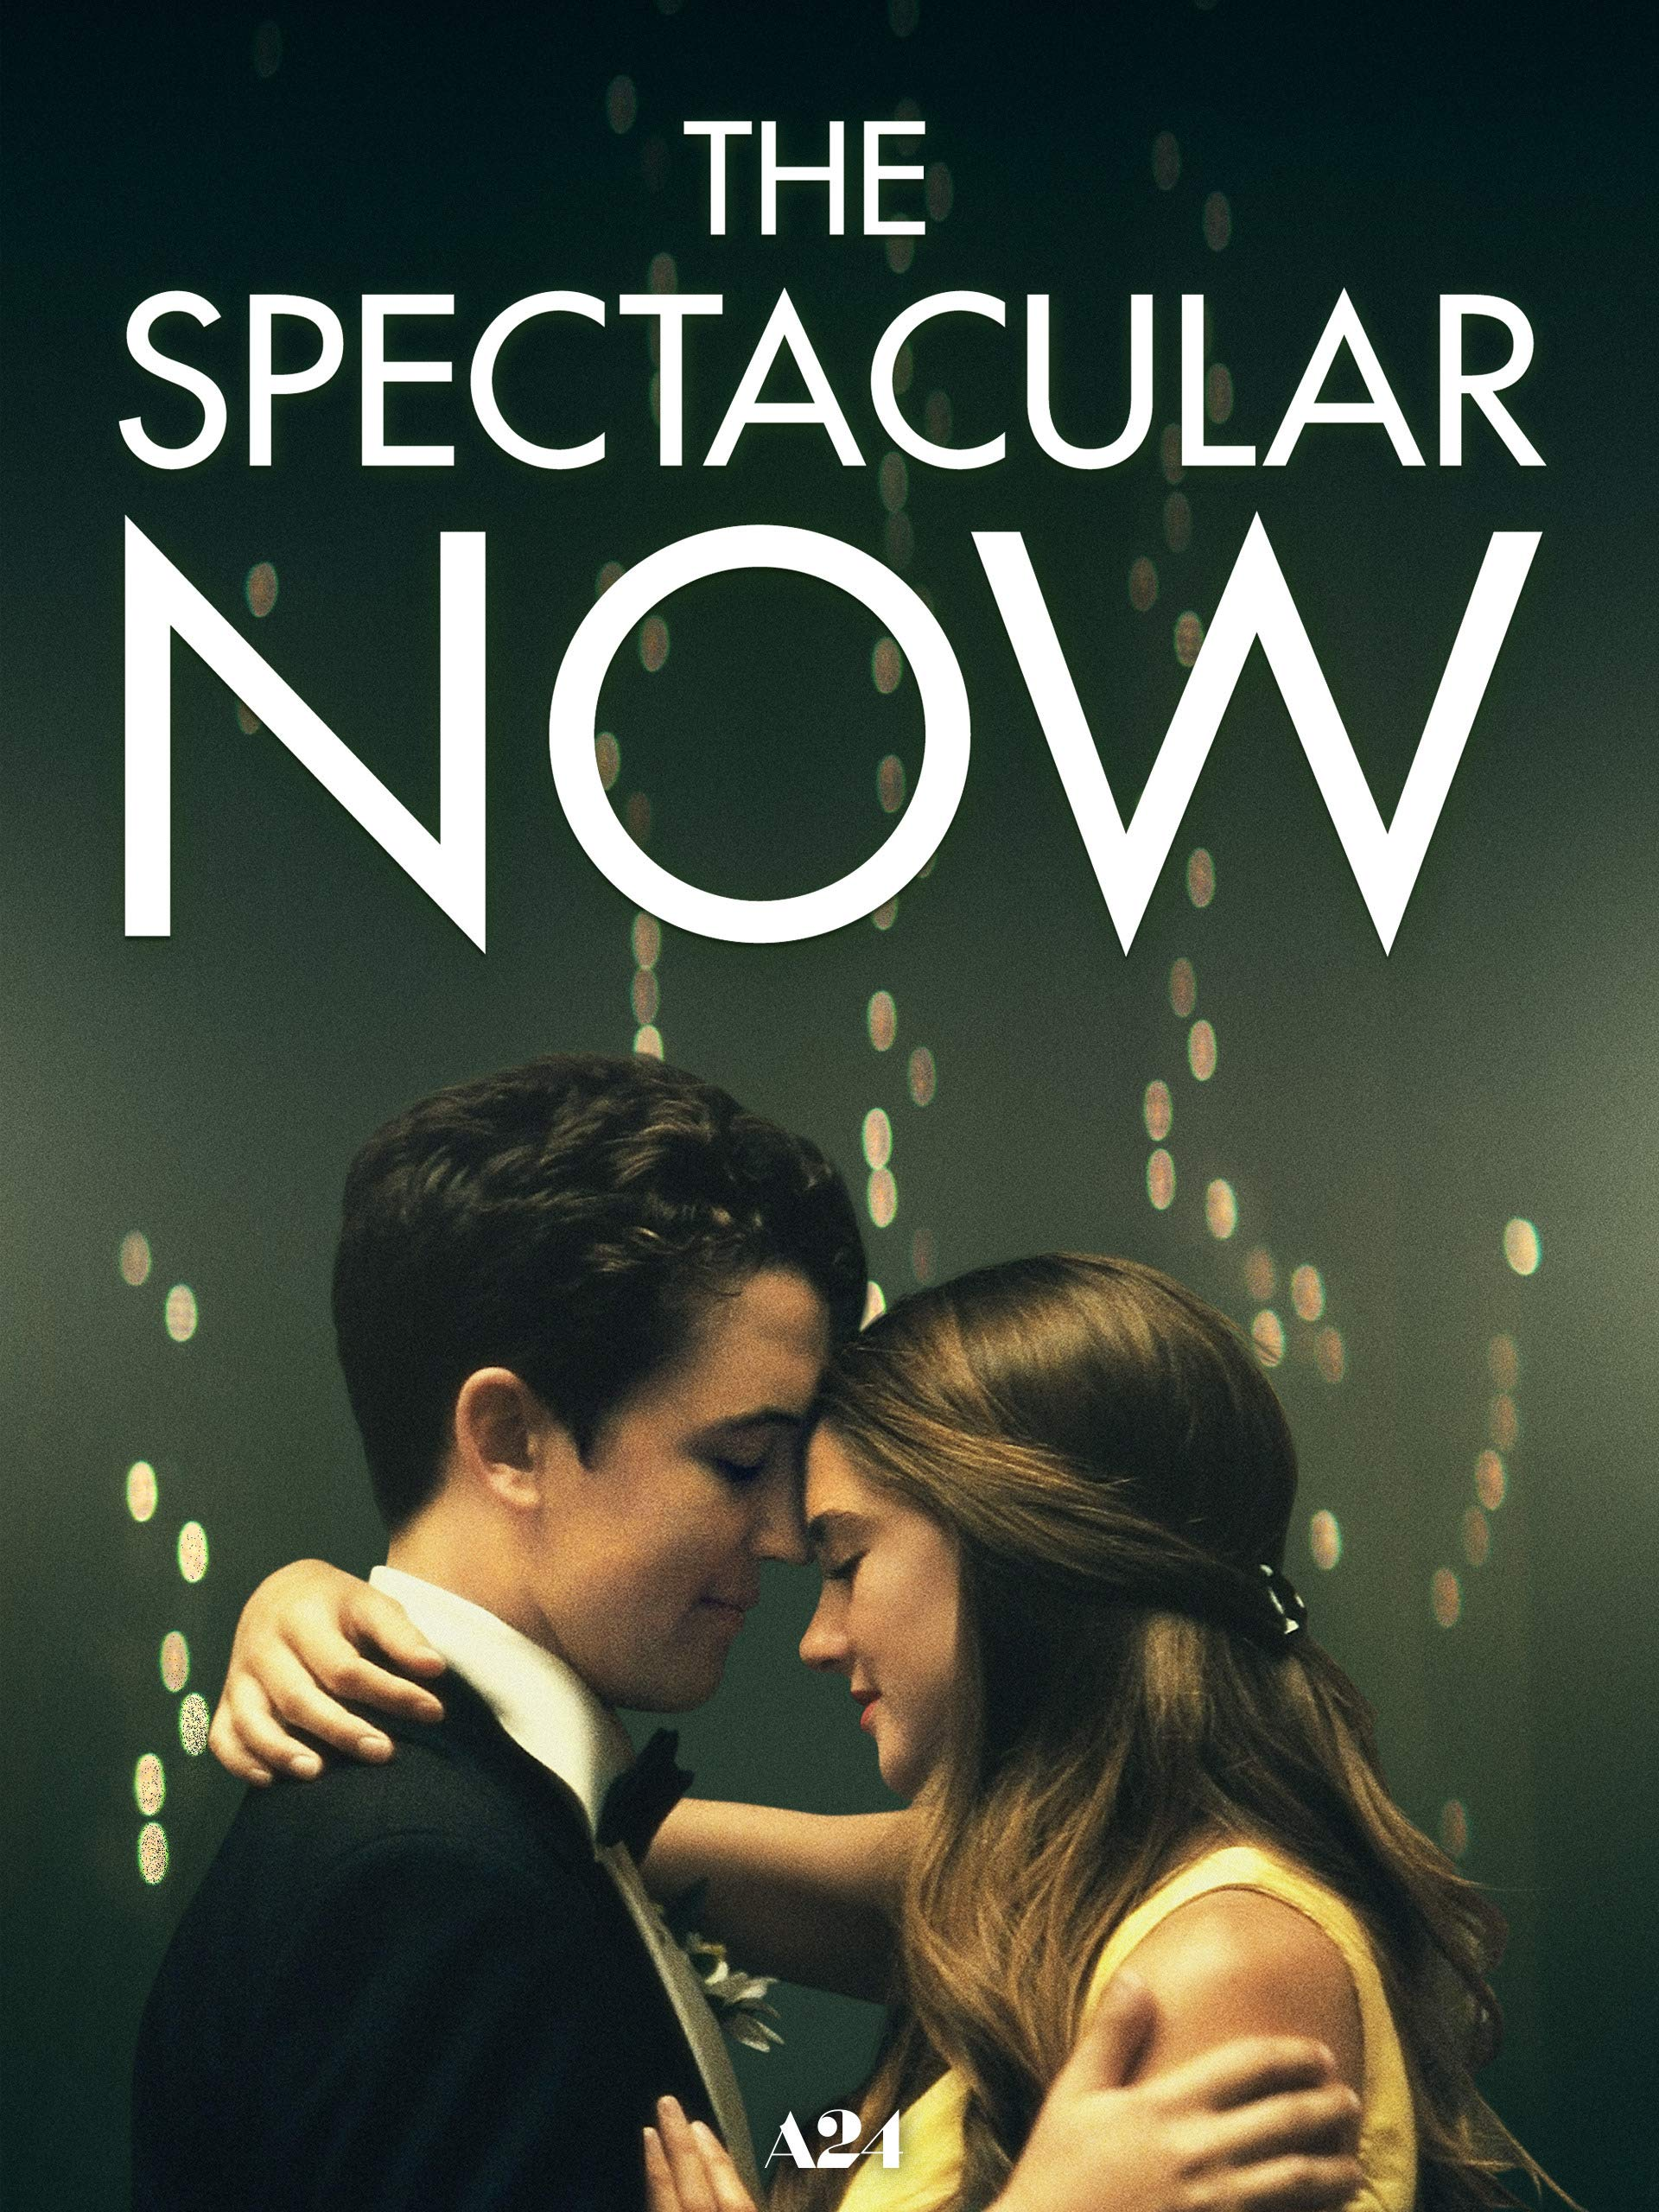 the spectacular now watch online subtitles